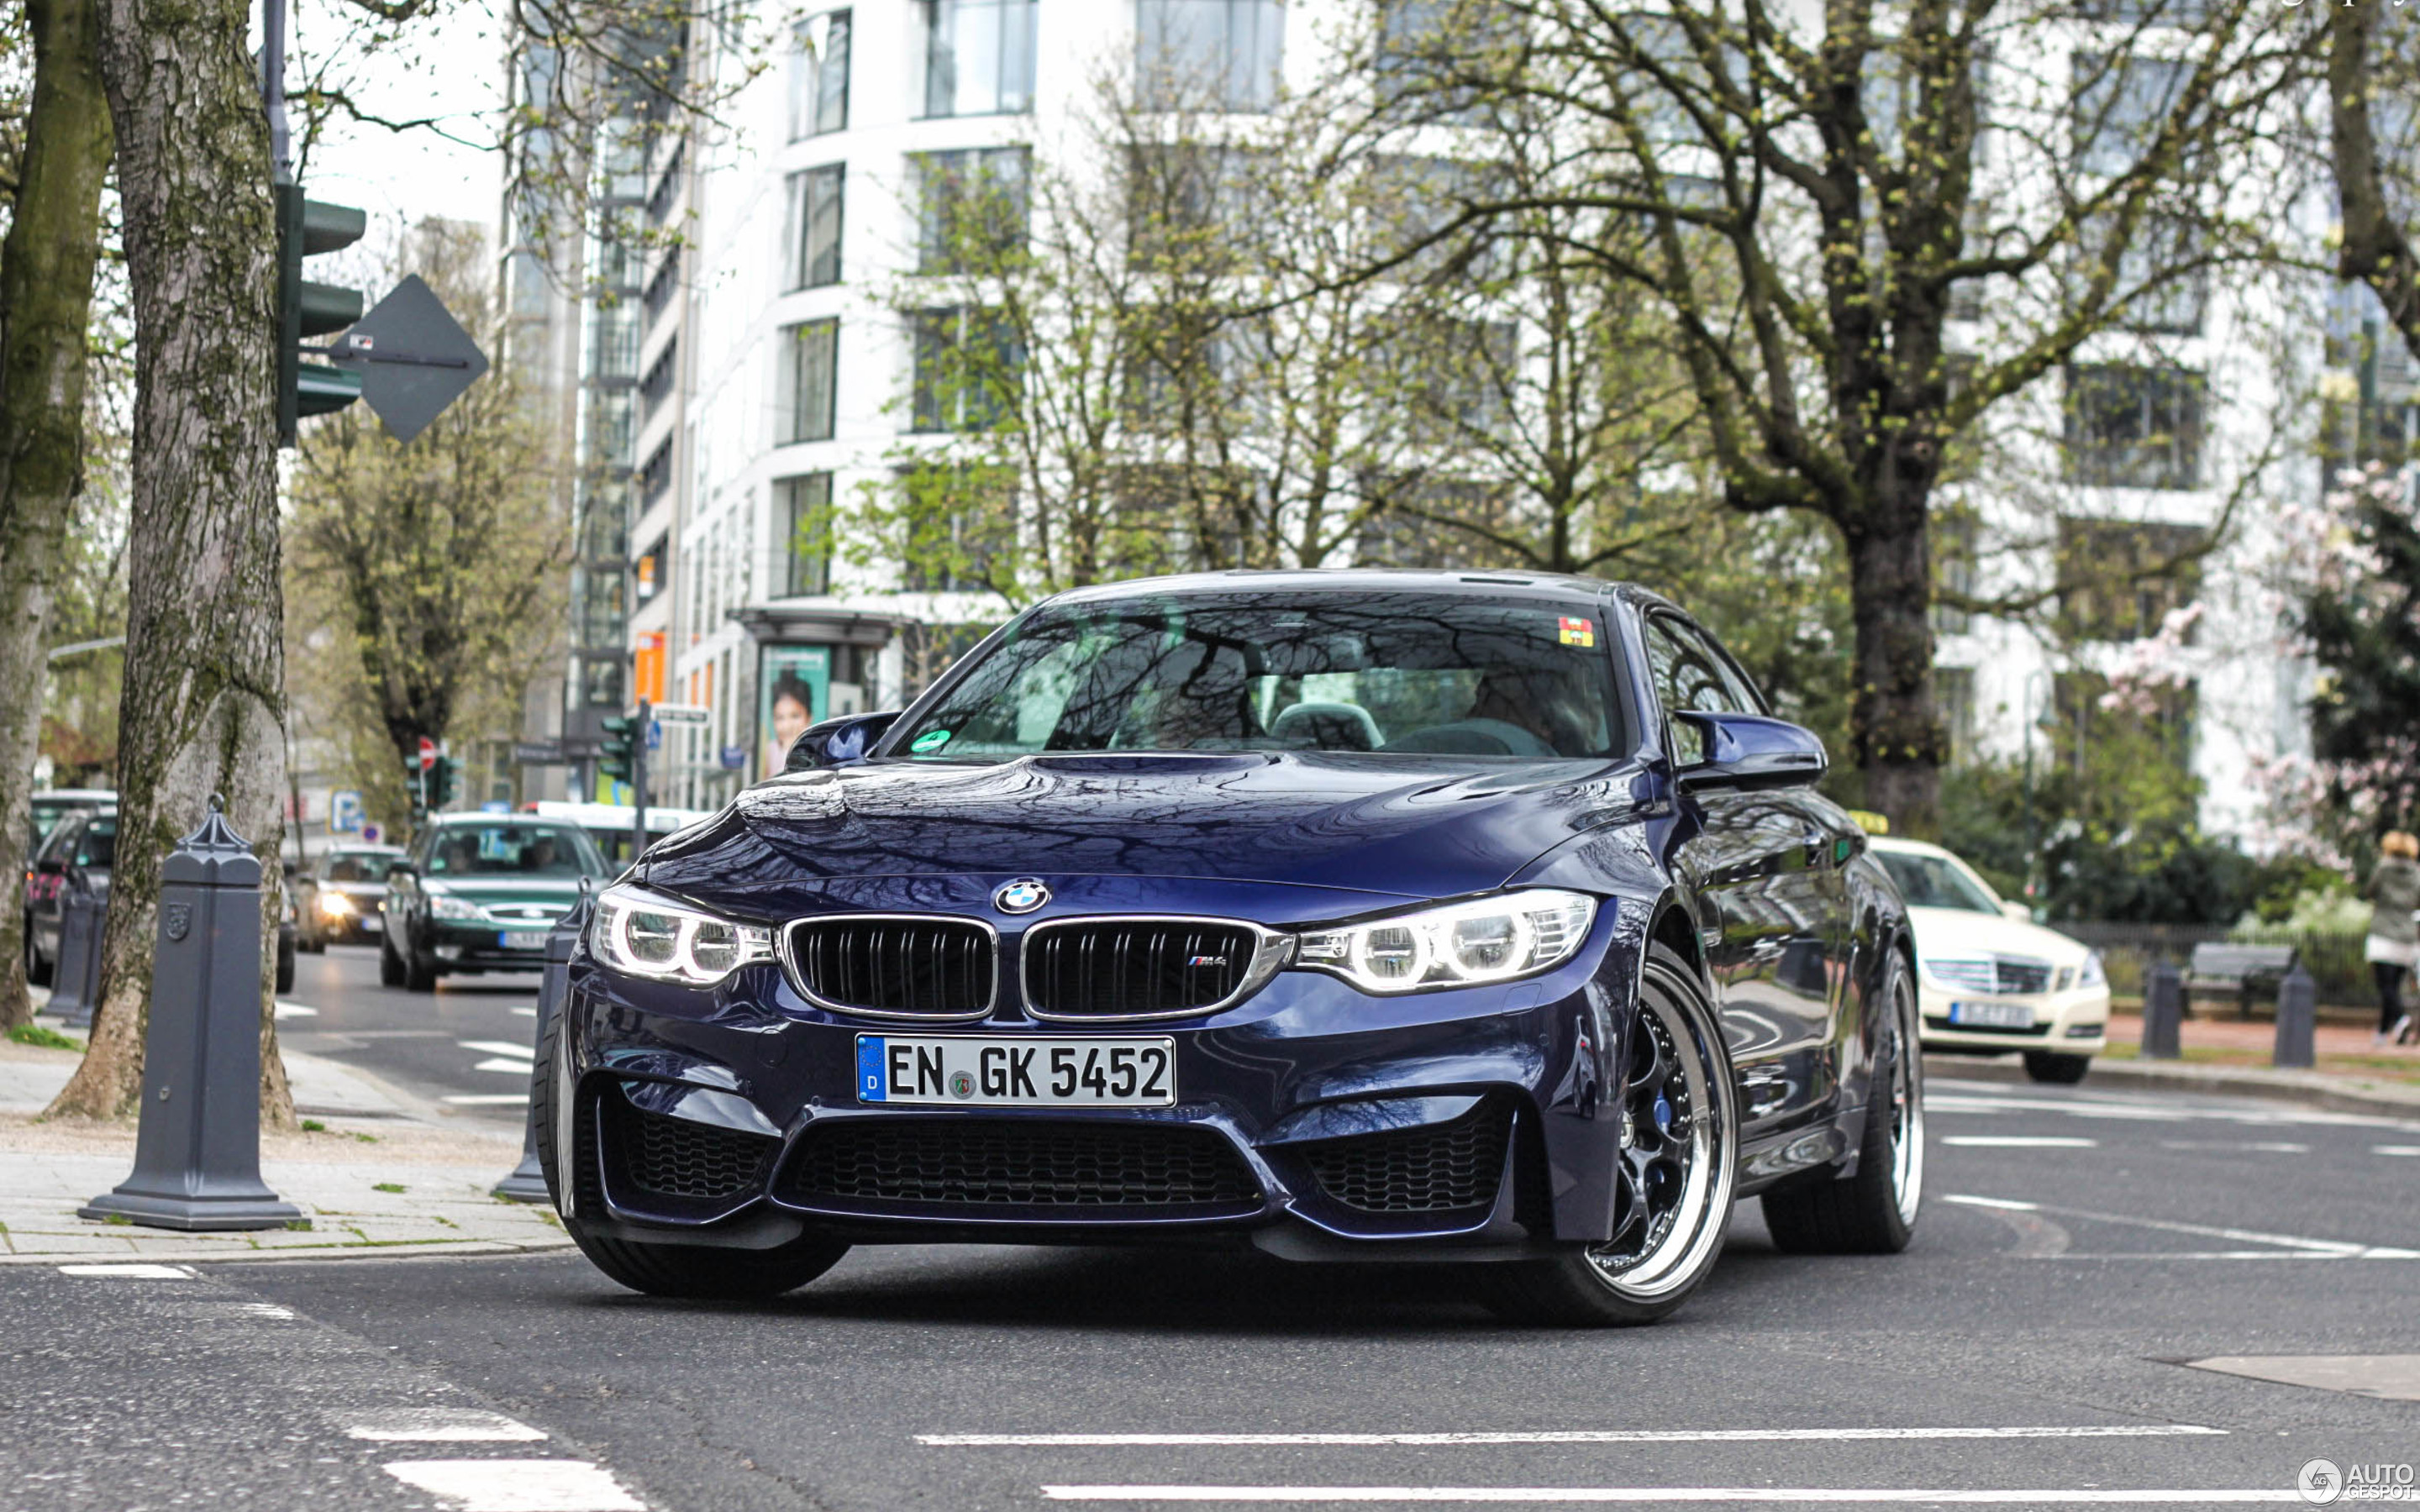 BMW M4 F82 Coupé 14 April 2015 Autogespot